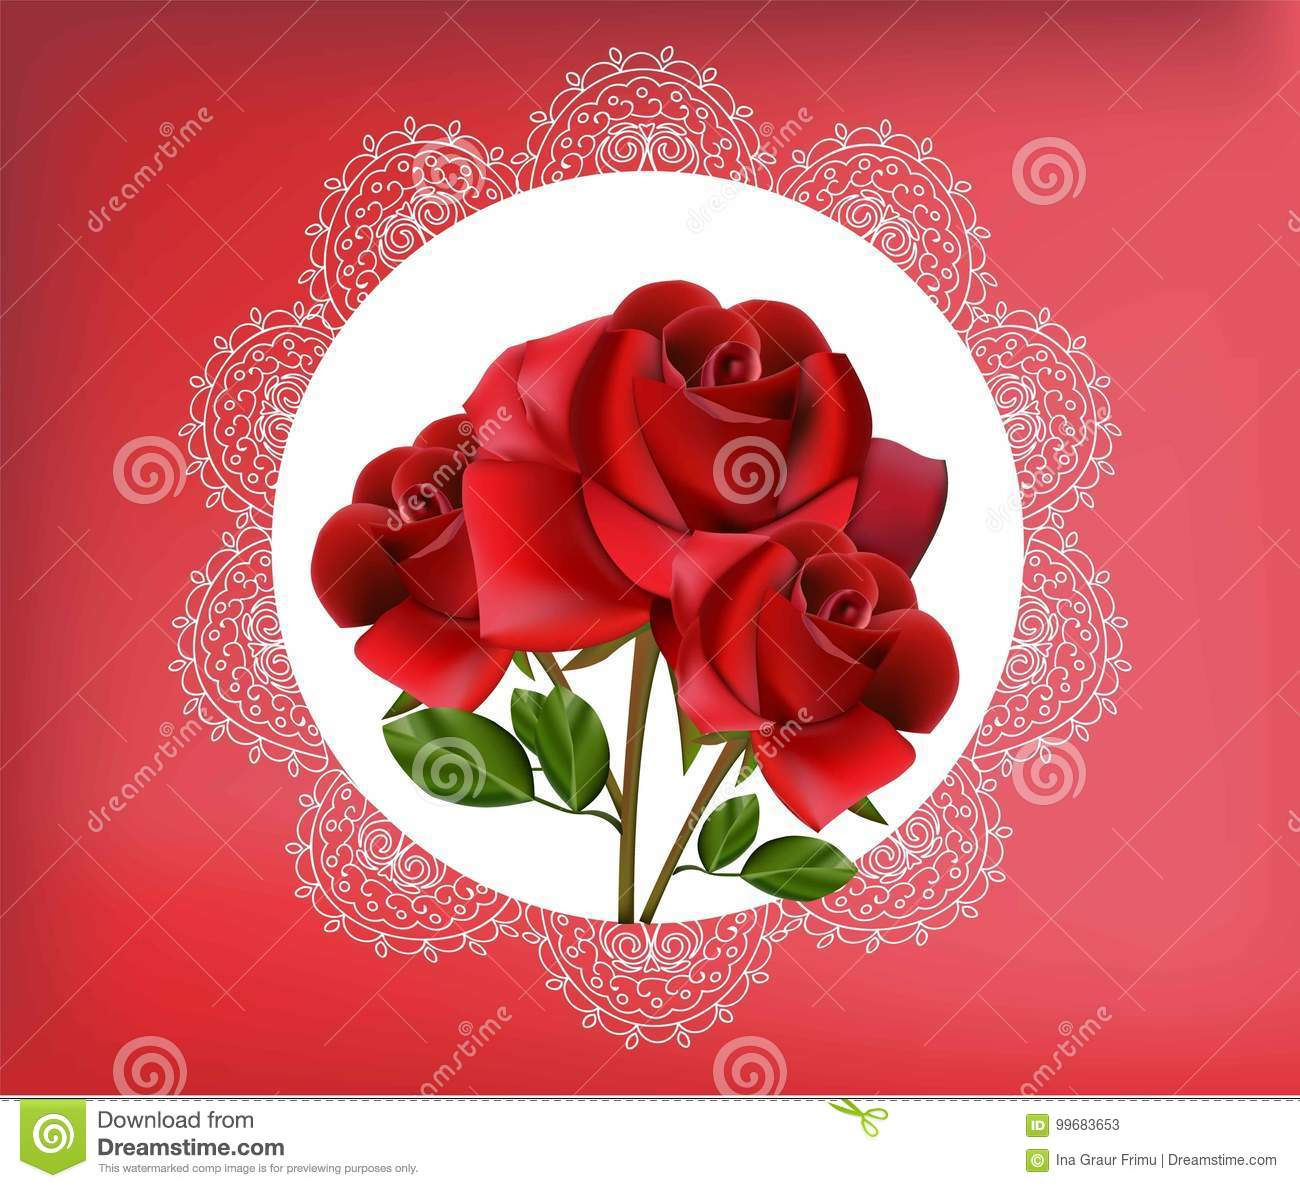 Red Rose Flowers In Vintage Lace Frame. Vector Illustration For ...